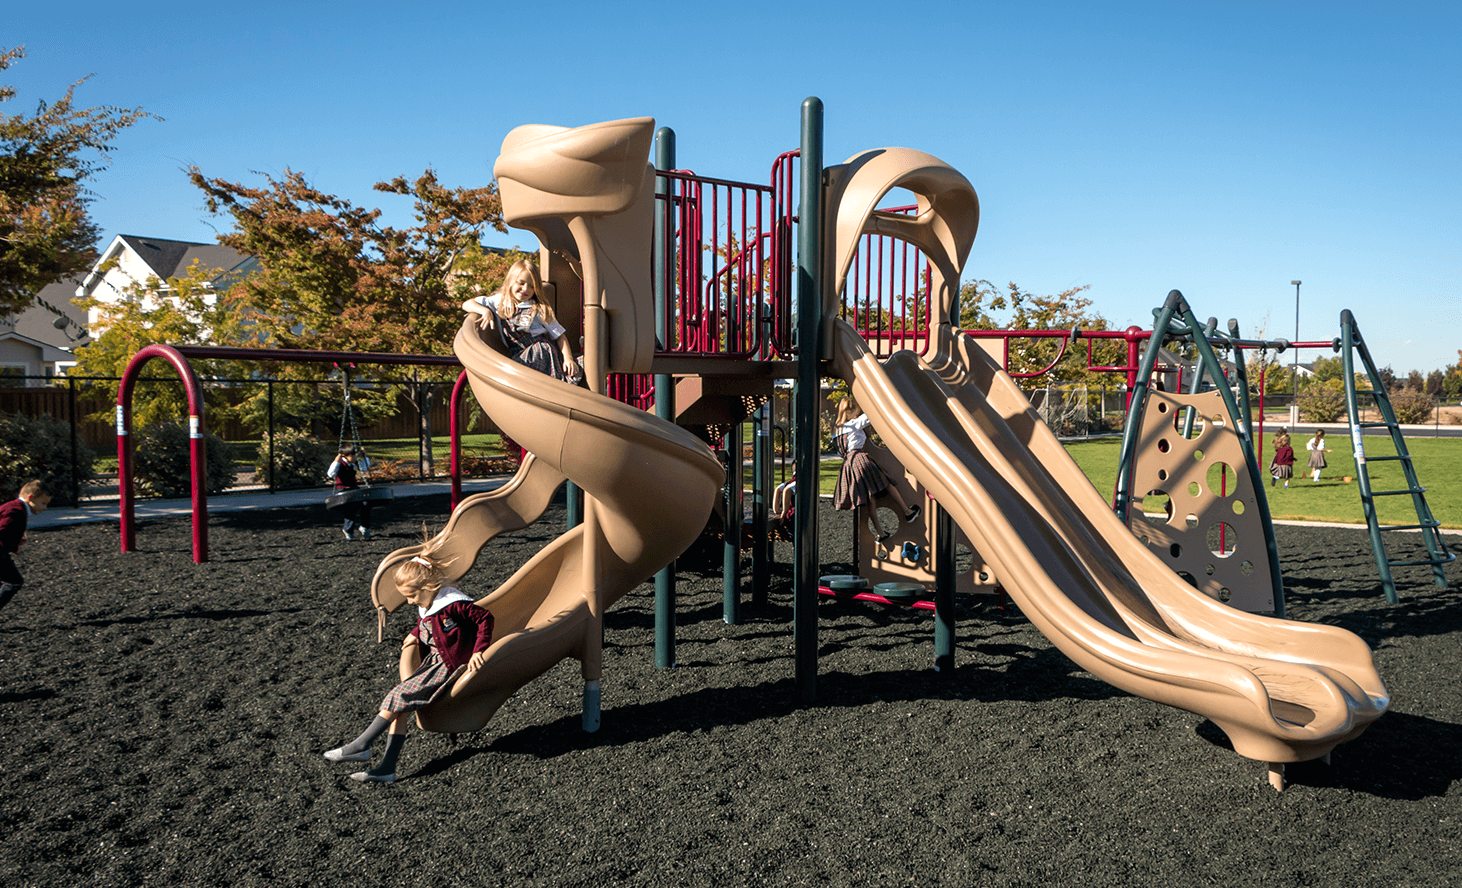 Playground Slide | Challenger School - Everest | Private School In Meridian, Idaho